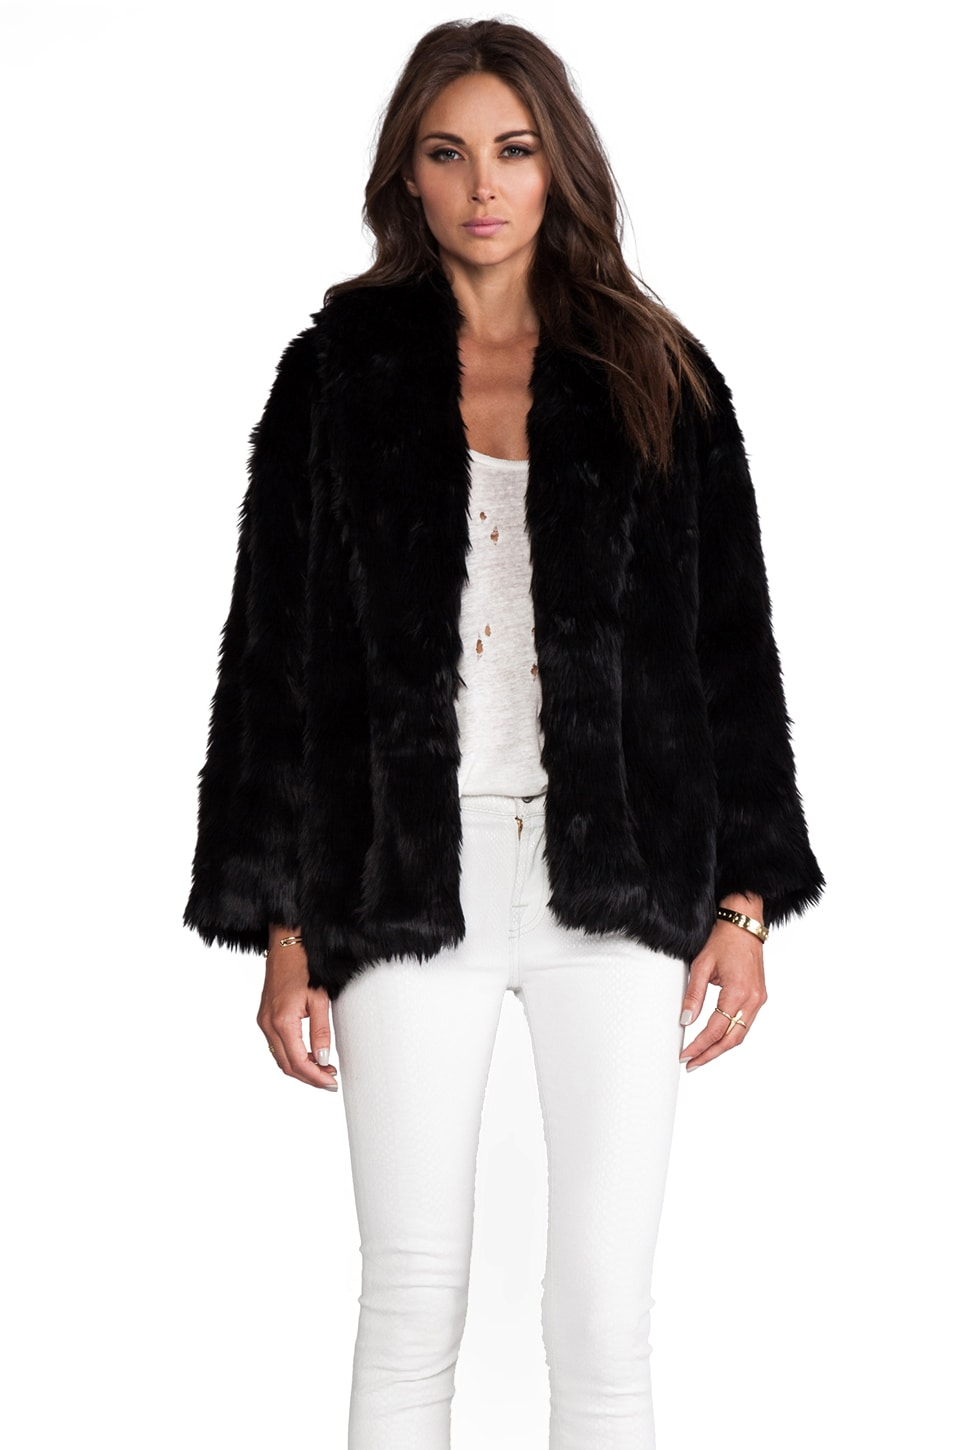 Alice + Olivia Alita Oversized Shawl Collar Faux Fur Coat in Black